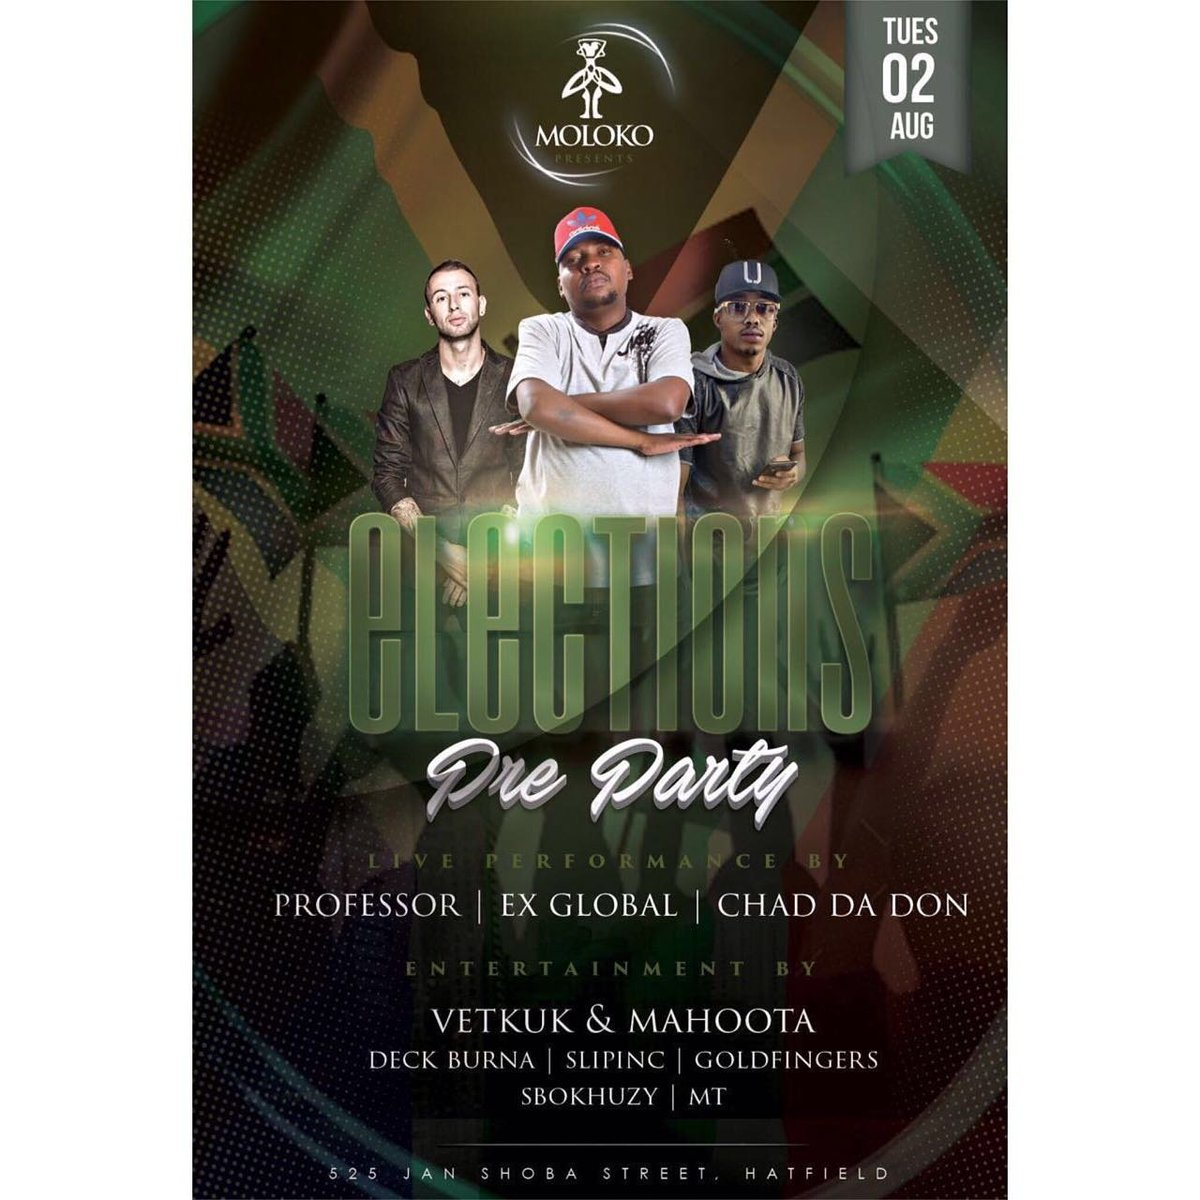 #PreElectionsParty @MolokoPretoria 2nyt. Its goin' DOWN heavy!!!! https://t.co/AAJwhQiAHA